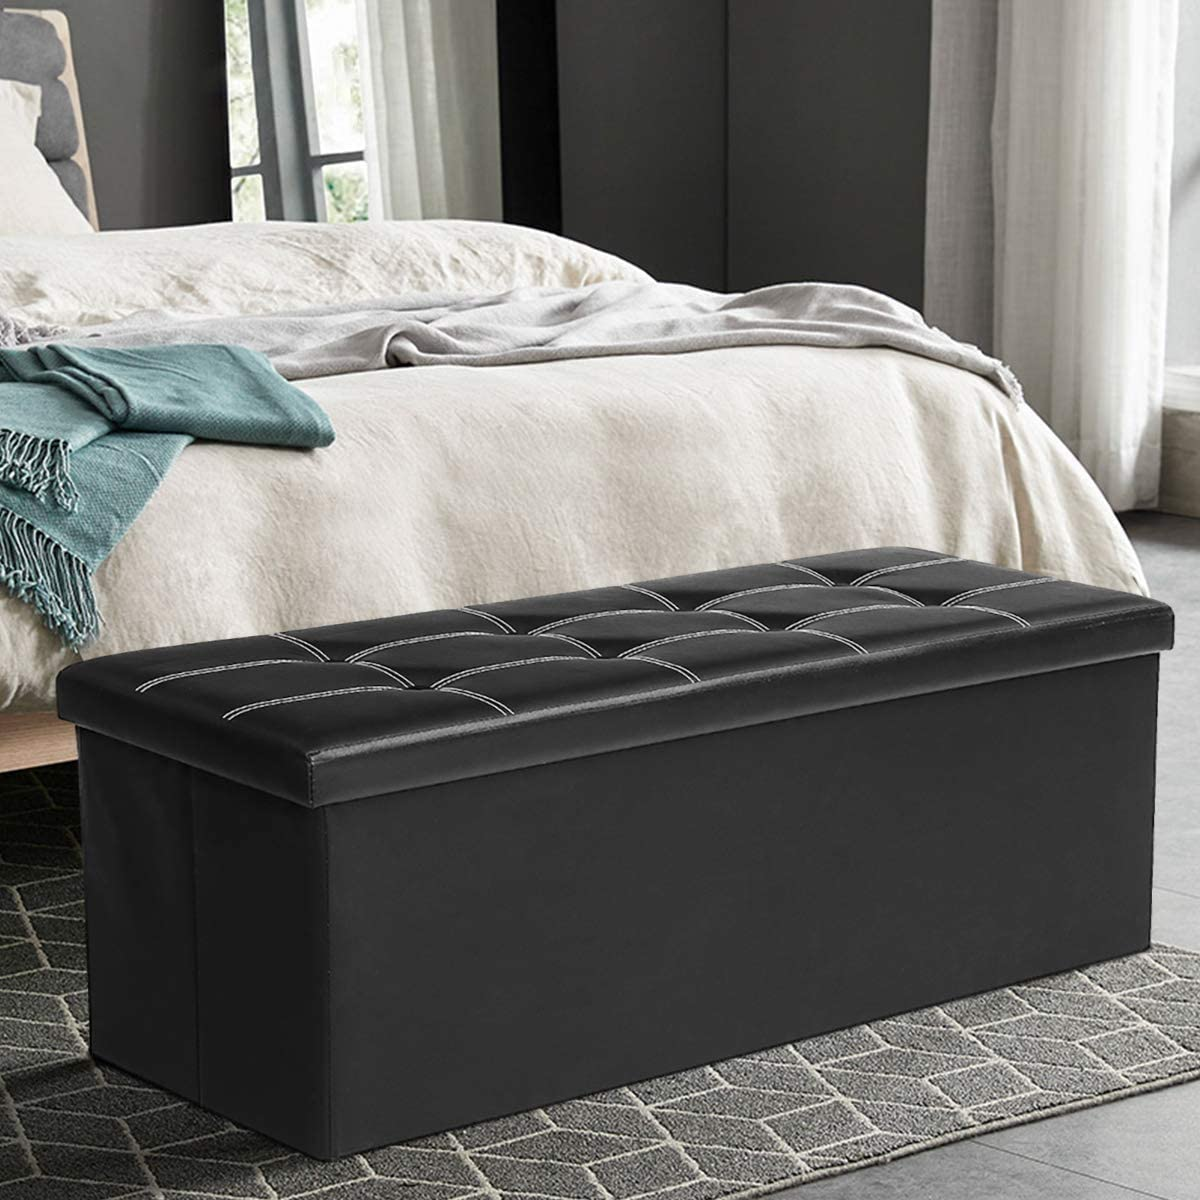 KINGSO 43 Ottoman with Storage Benches for Dedroom, Large Folding Faux Leather Toy Chest, Storage Chest Footrest Padded Seat for Entryway, Bedroom, Support 660lbs Black